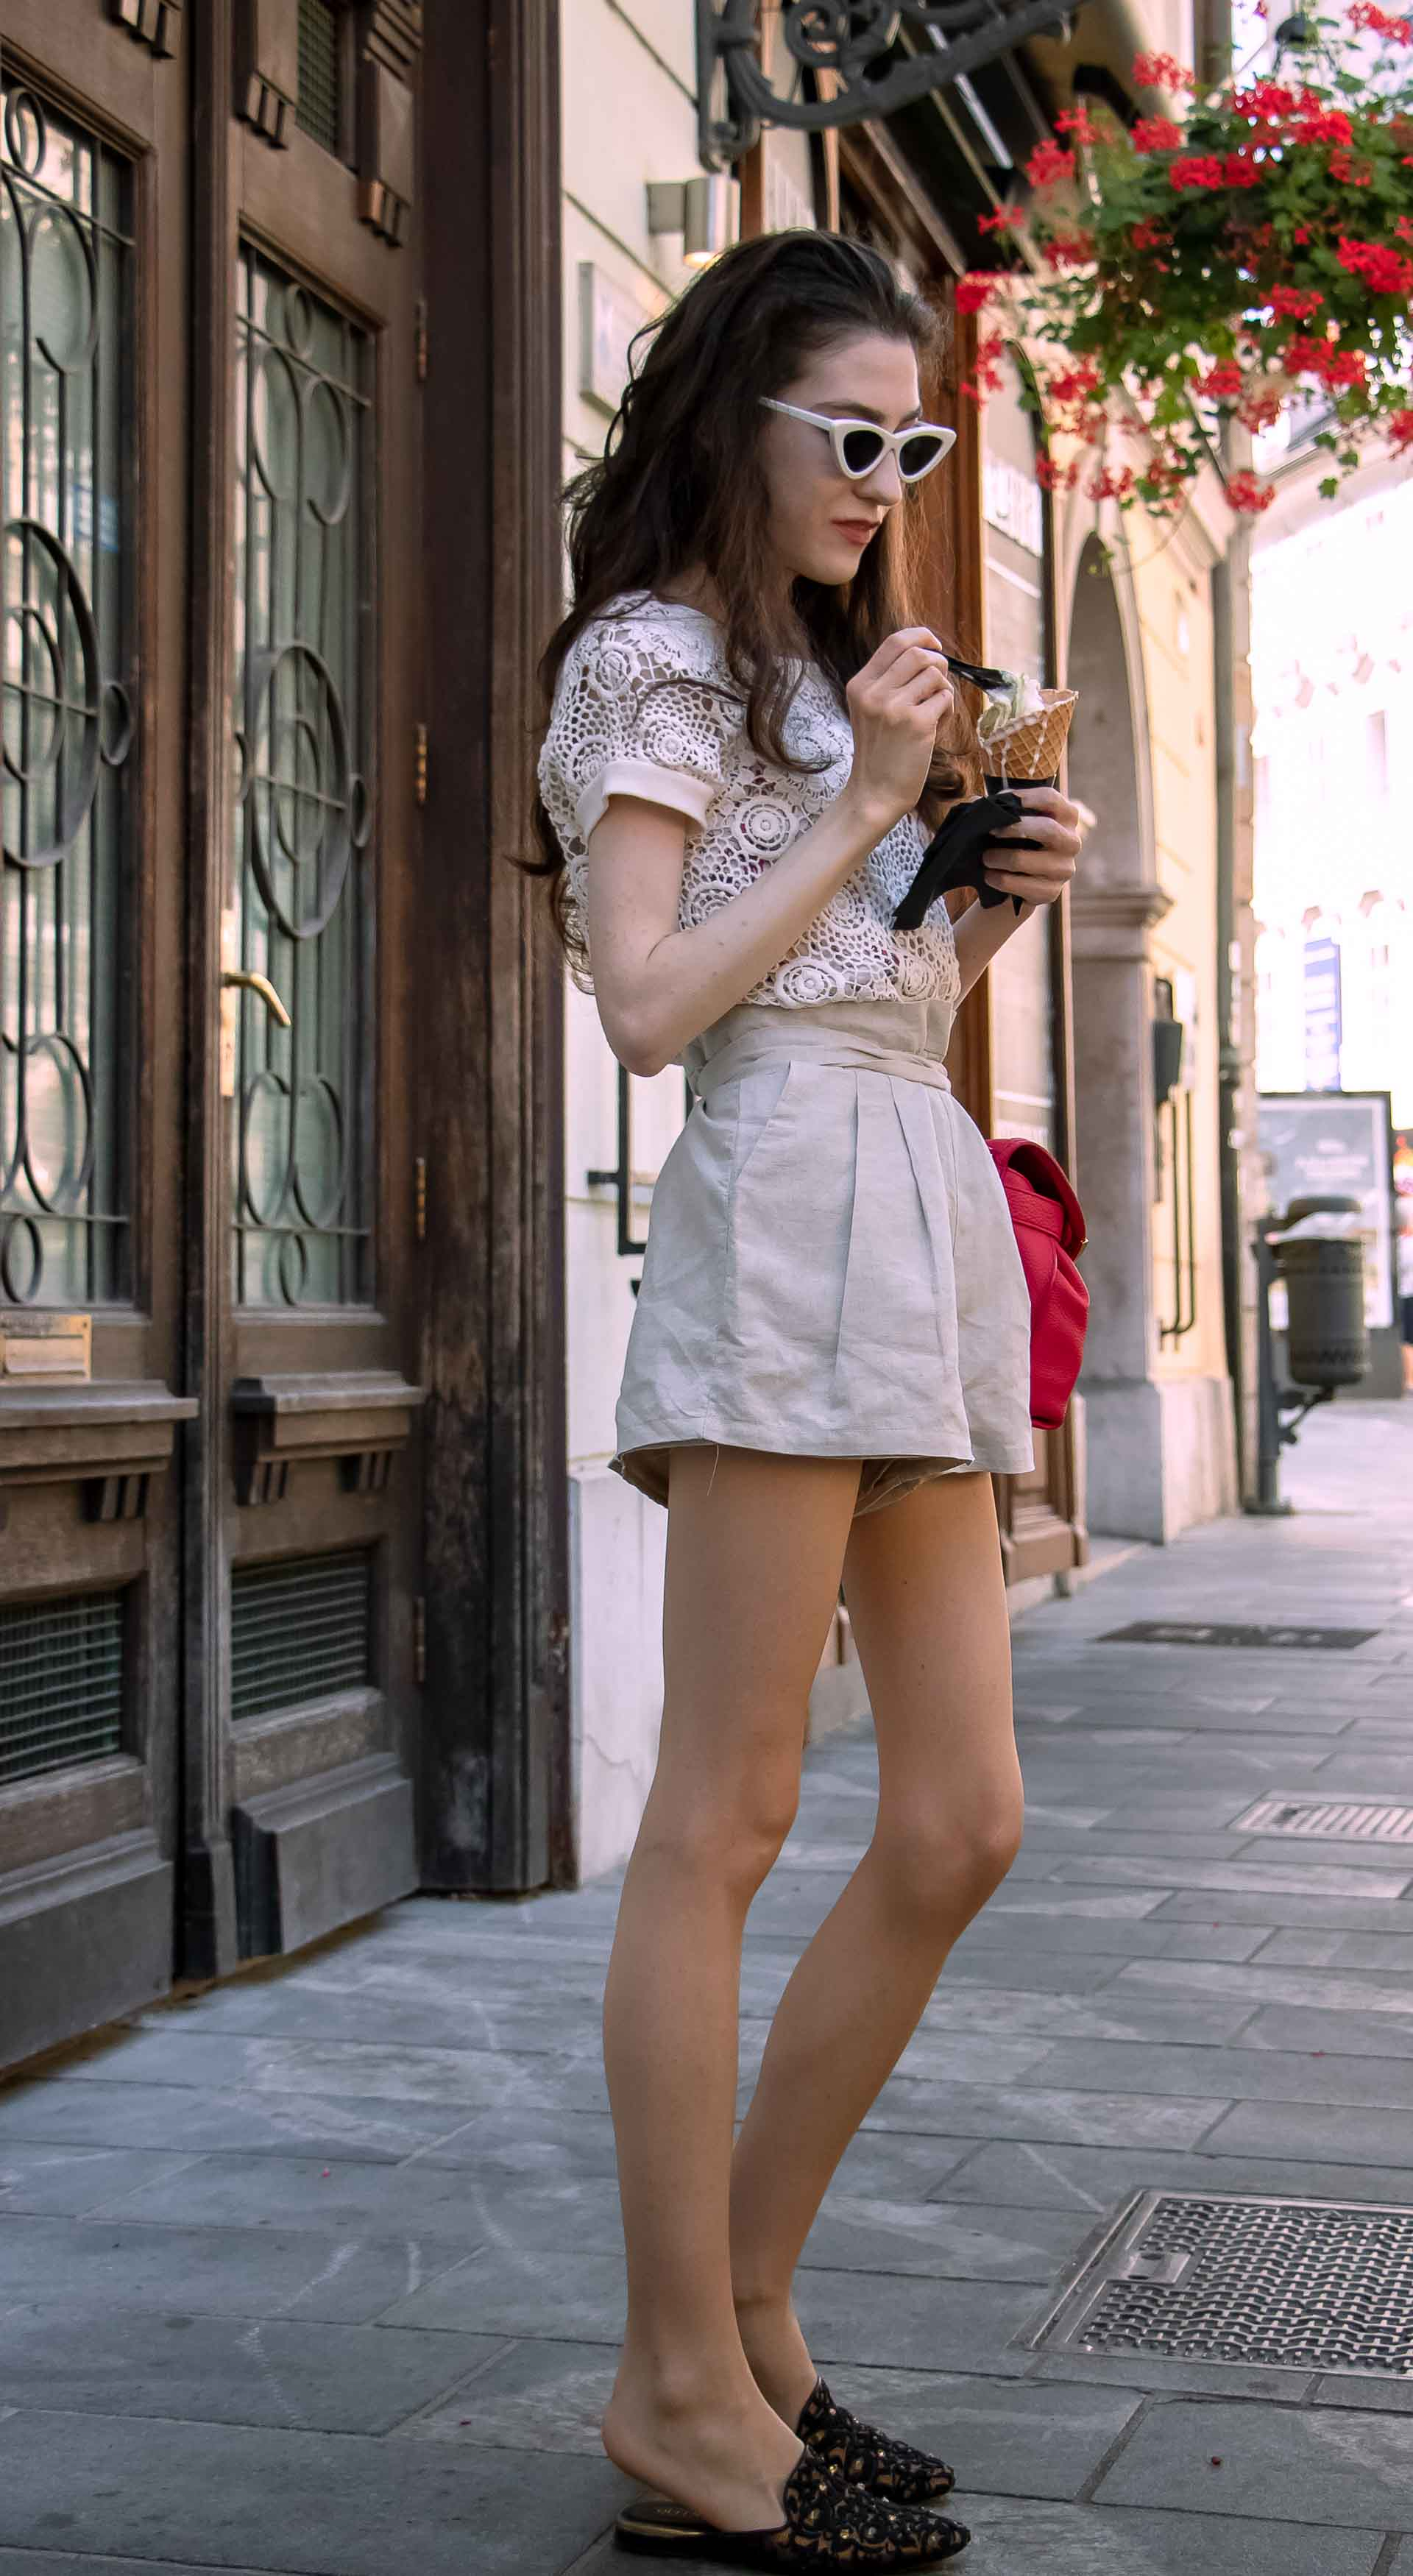 Beautiful Slovenian Fashion Blogger Veronika Lipar of Brunette from Wall wearing beige linen shorts, crochet top, black slip-ons shoes, pink top handle bag, eating ice cream in a cone while walking down the street